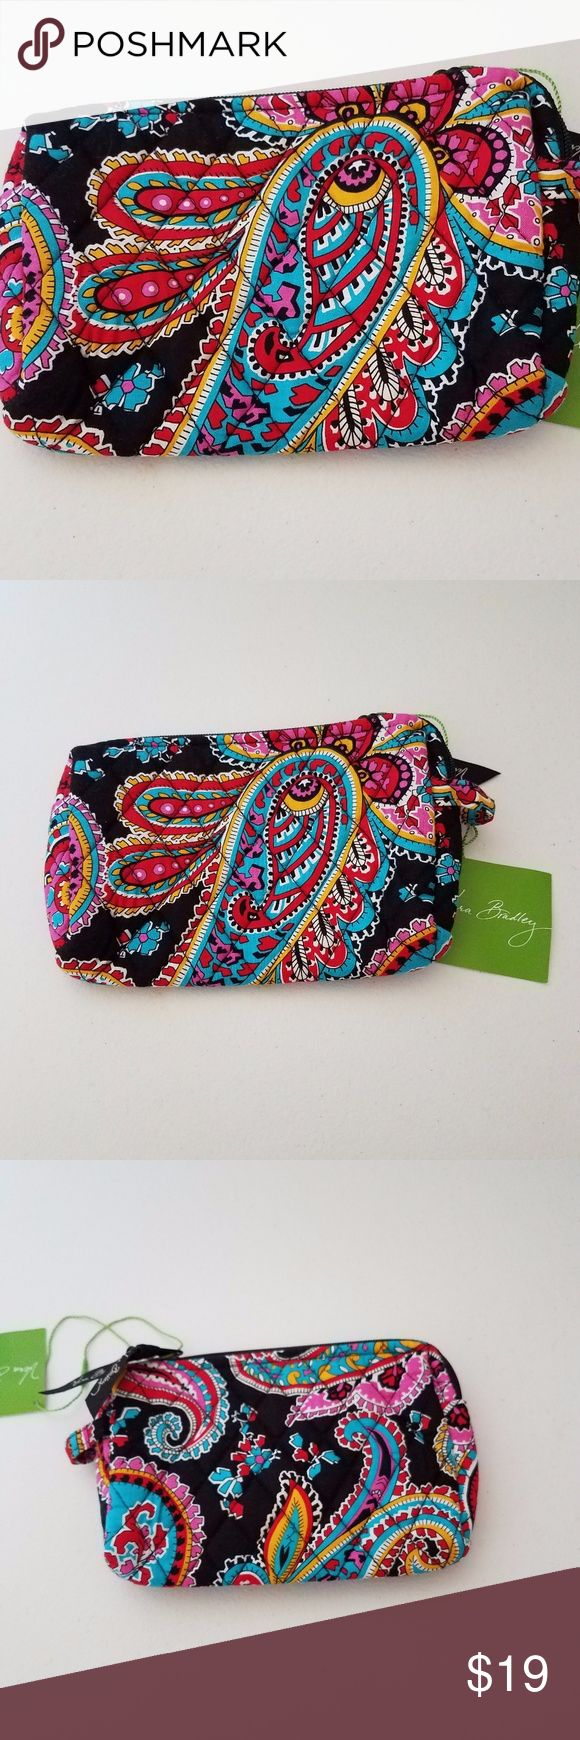 Vera Bradley Small Cosmetic Bag Vera Bradley small cosmetic bag in Parisian Paisley (retired pattern: July 2015 - May 2016) New with tag Zip closure and has small loop on one side Measurements in photos Vera Bradley Bags Cosmetic Bags & Cases